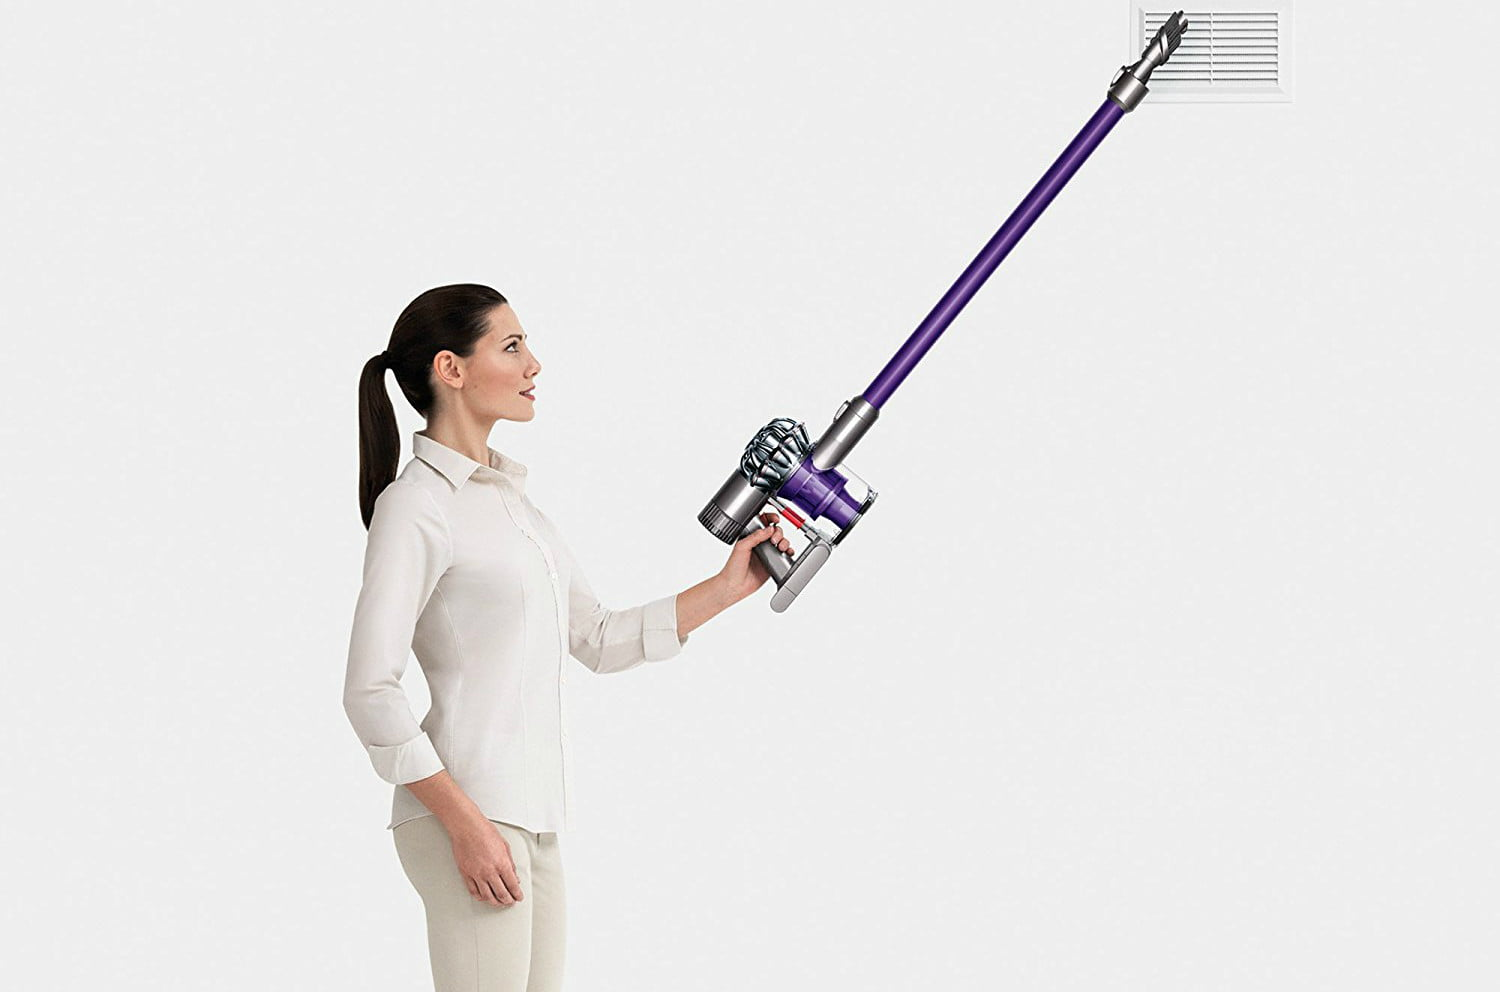 Amazon takes 46% off the Dyson V6 Animal cordless stick vacuum cleaner